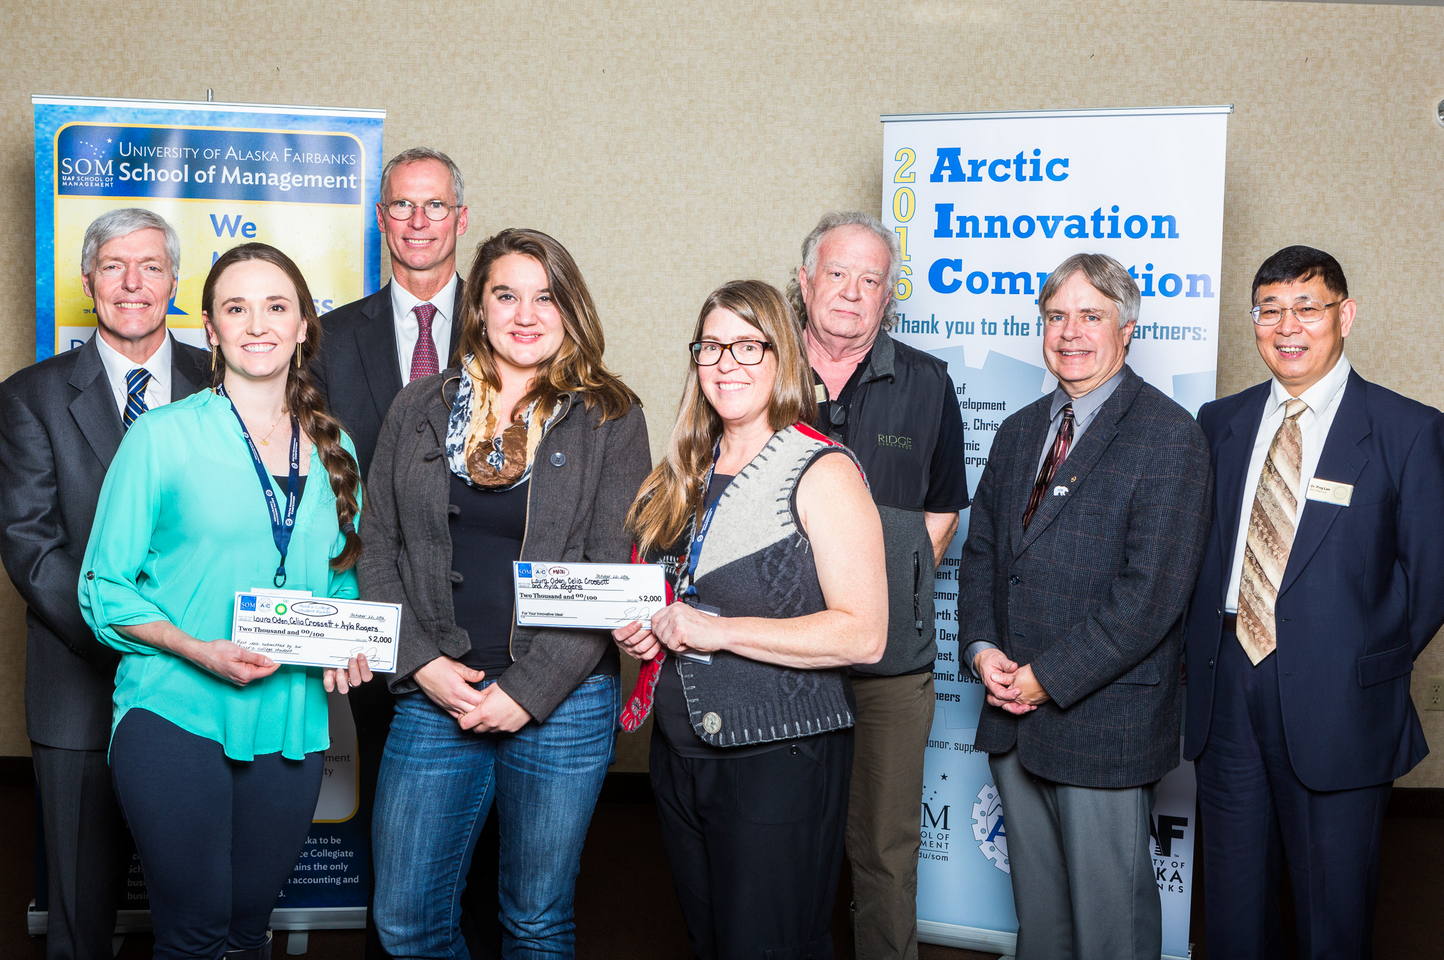 Third place in the Arctic Innovation Competition